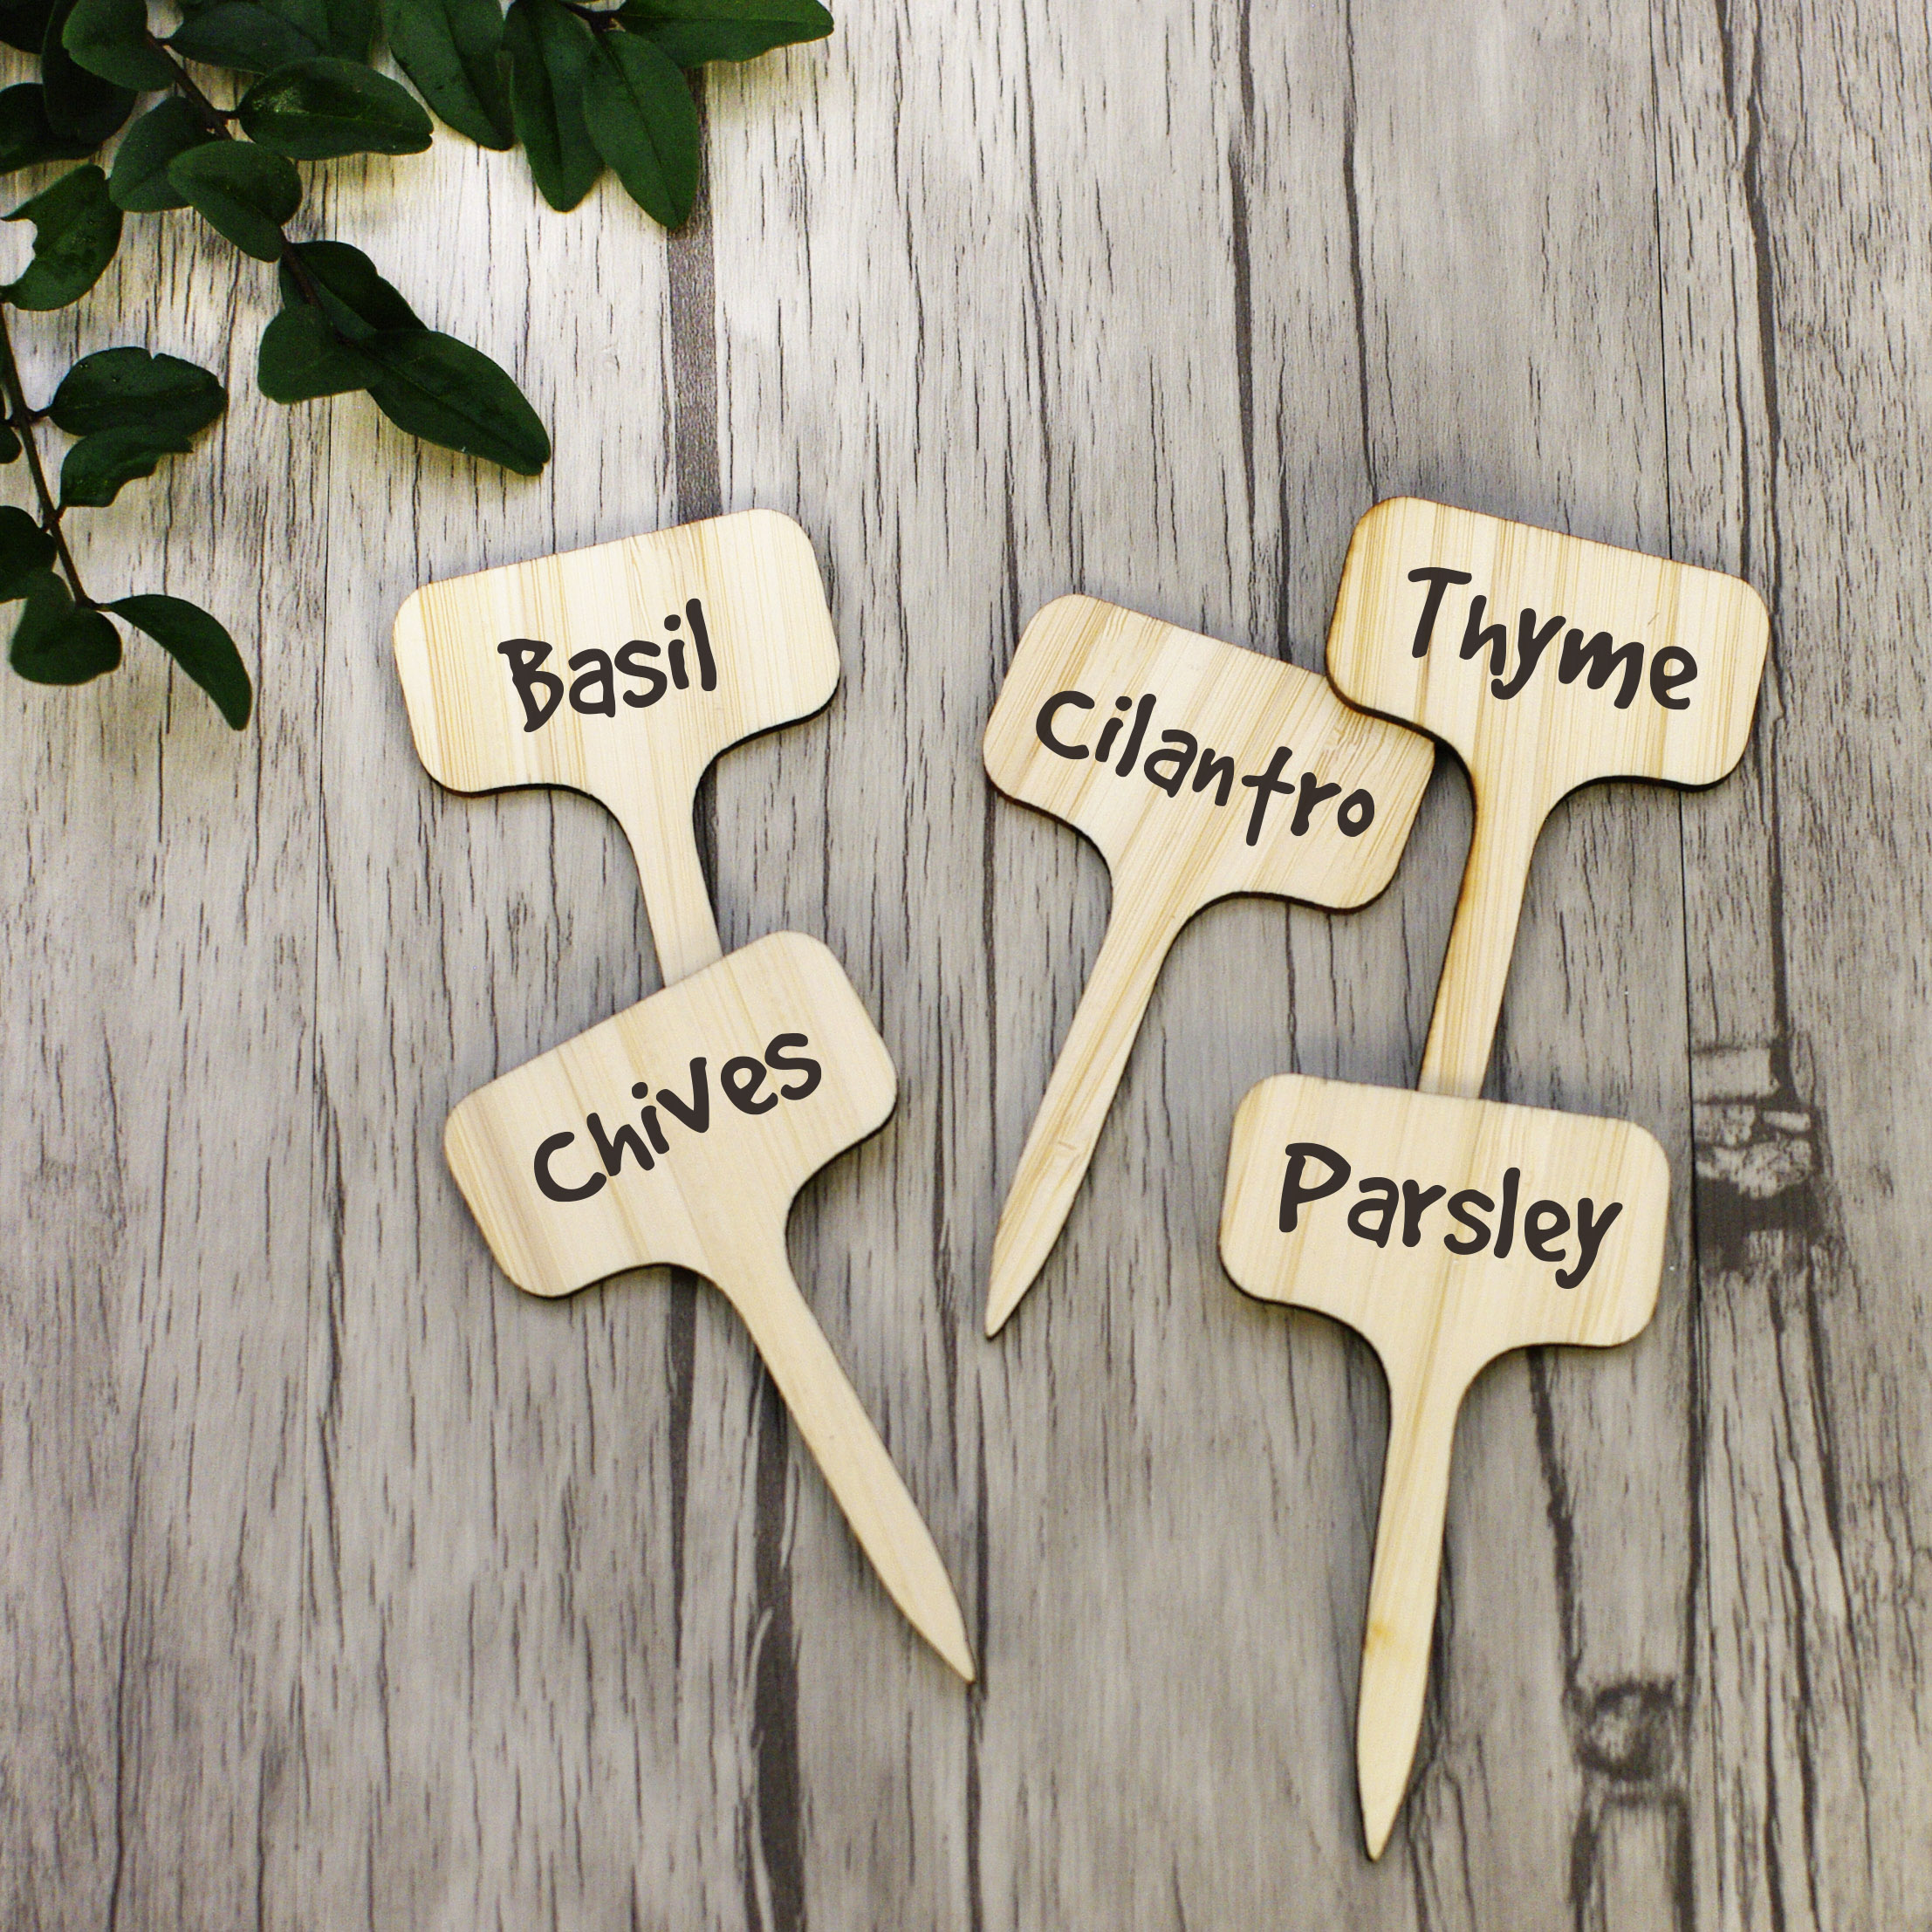 25pcs Bamboo Plant Labels , Eco-Friendly T-Type Wooden Plant Sign Tags Garden Markers For Seed Potted Herbs Flowers BL02